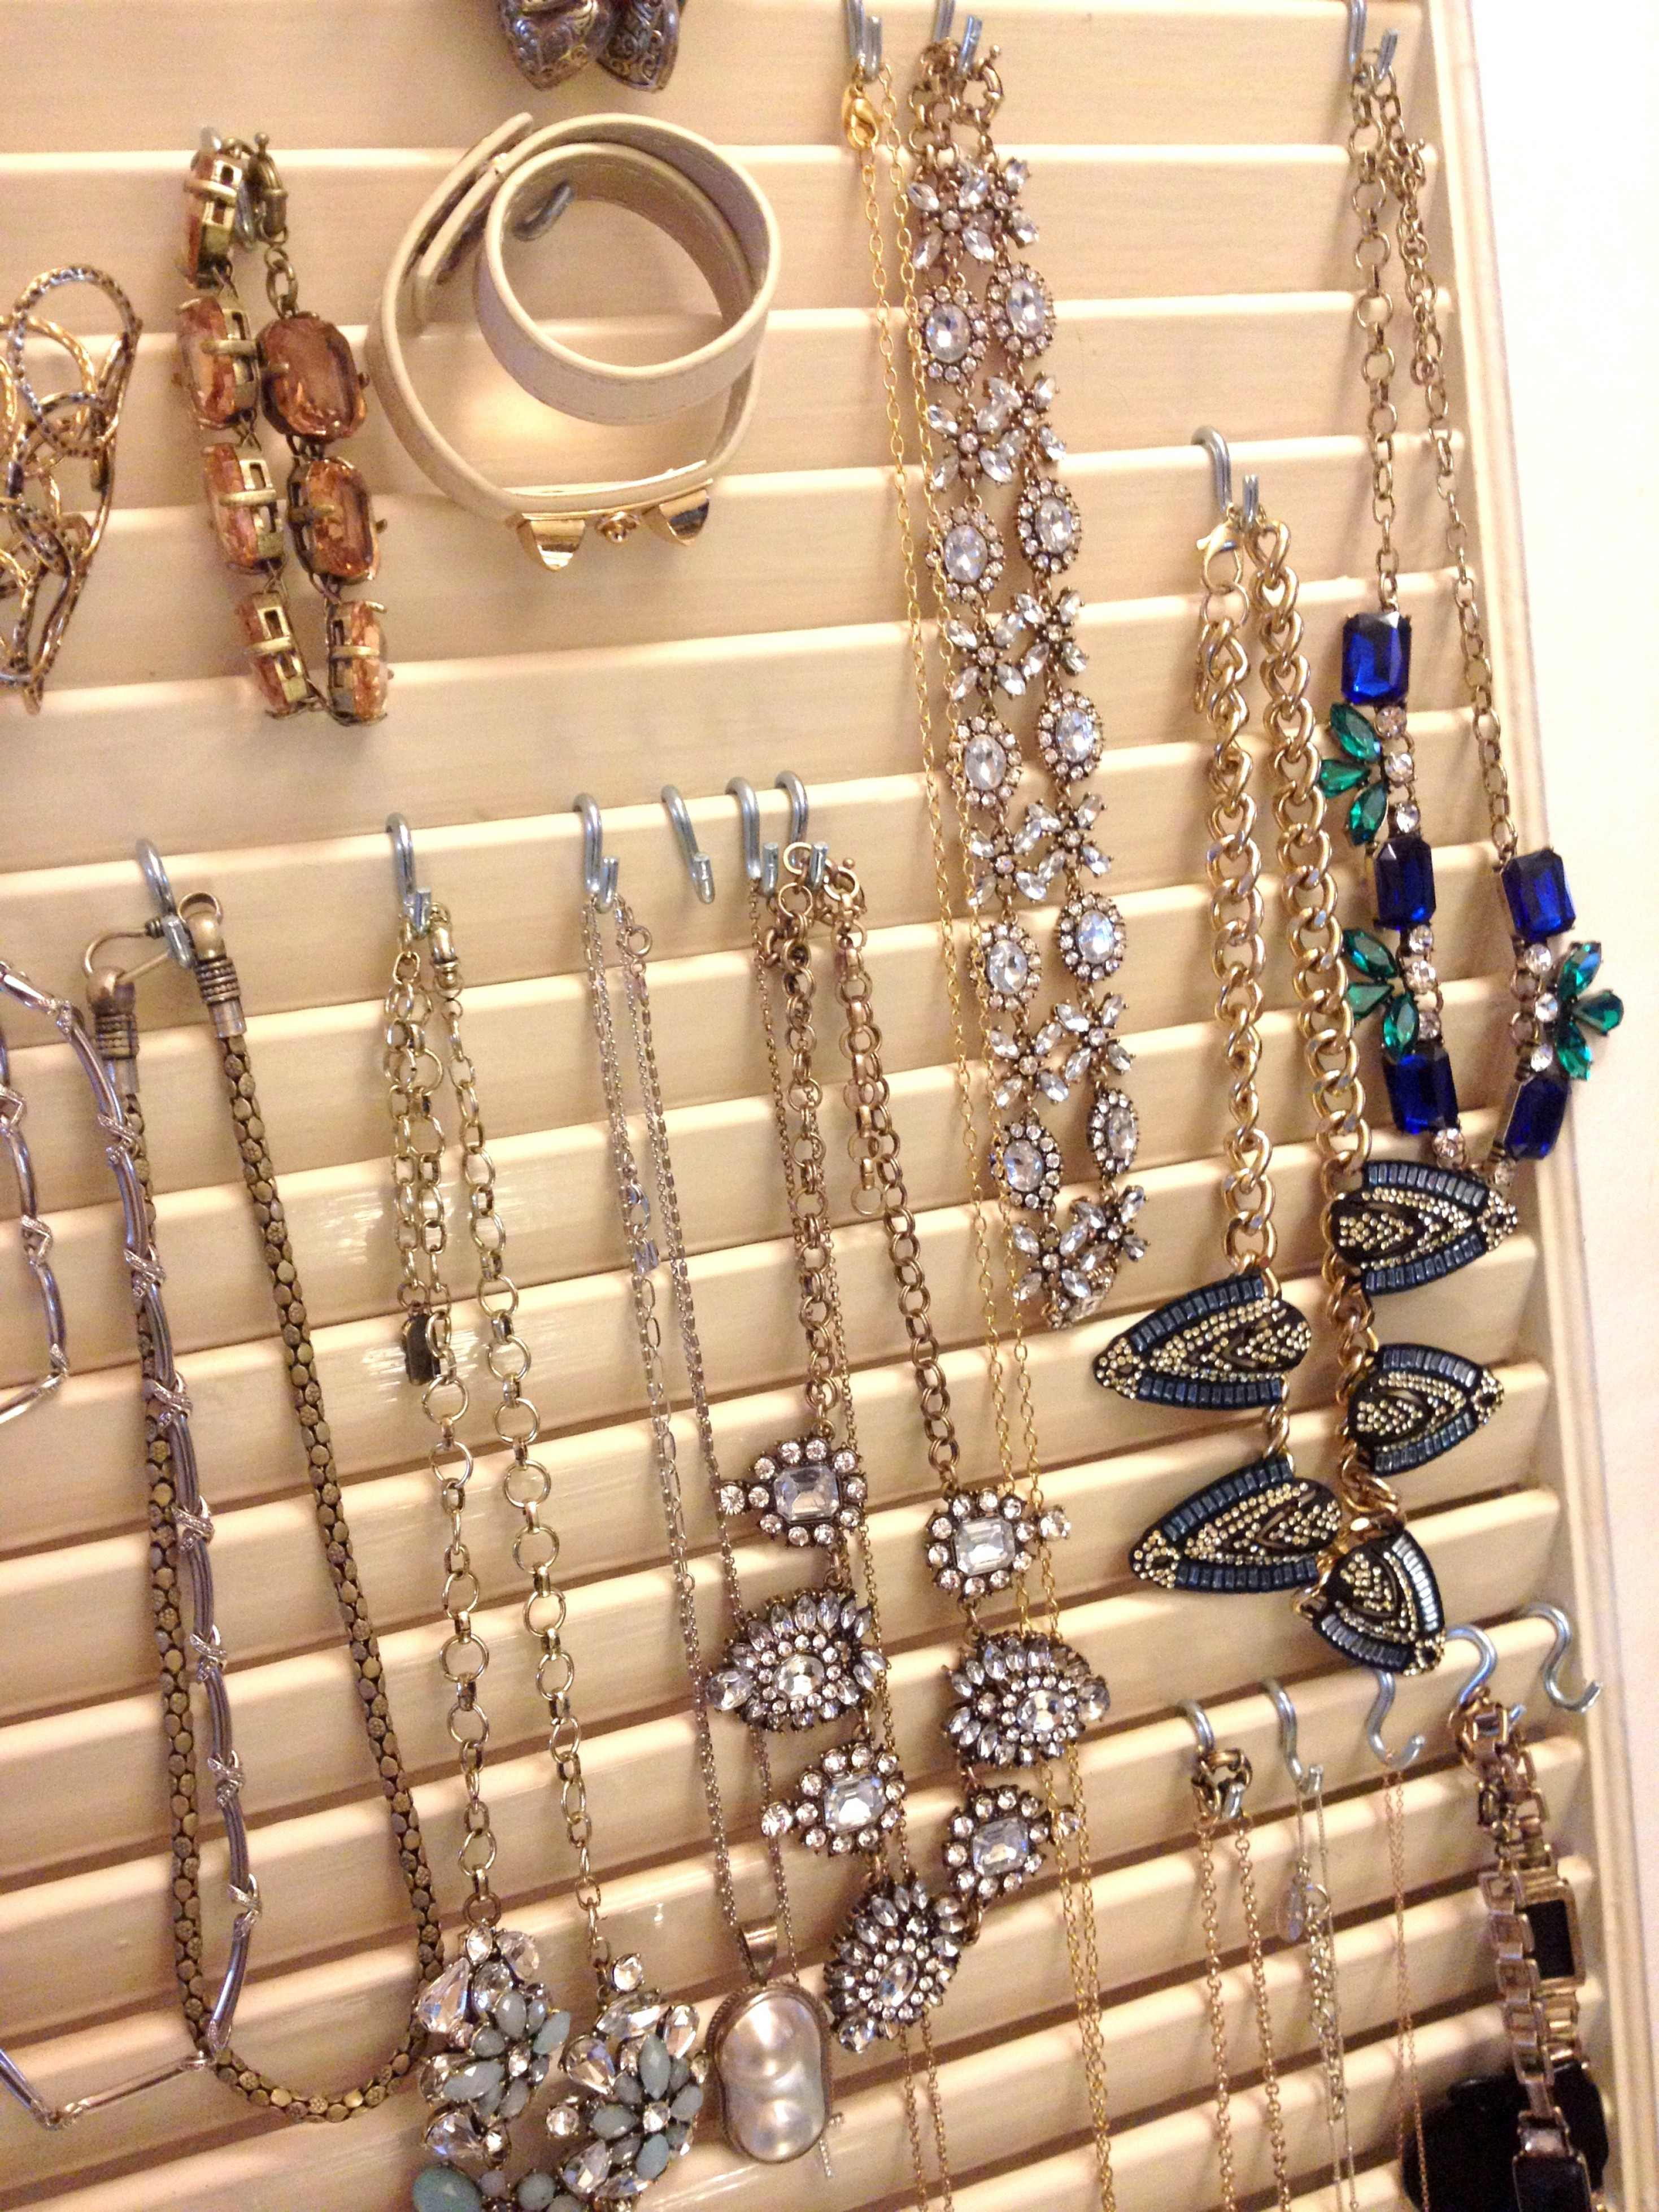 Hanging Jewelry Organizer DIY  Diy Jewelry Organizer Board